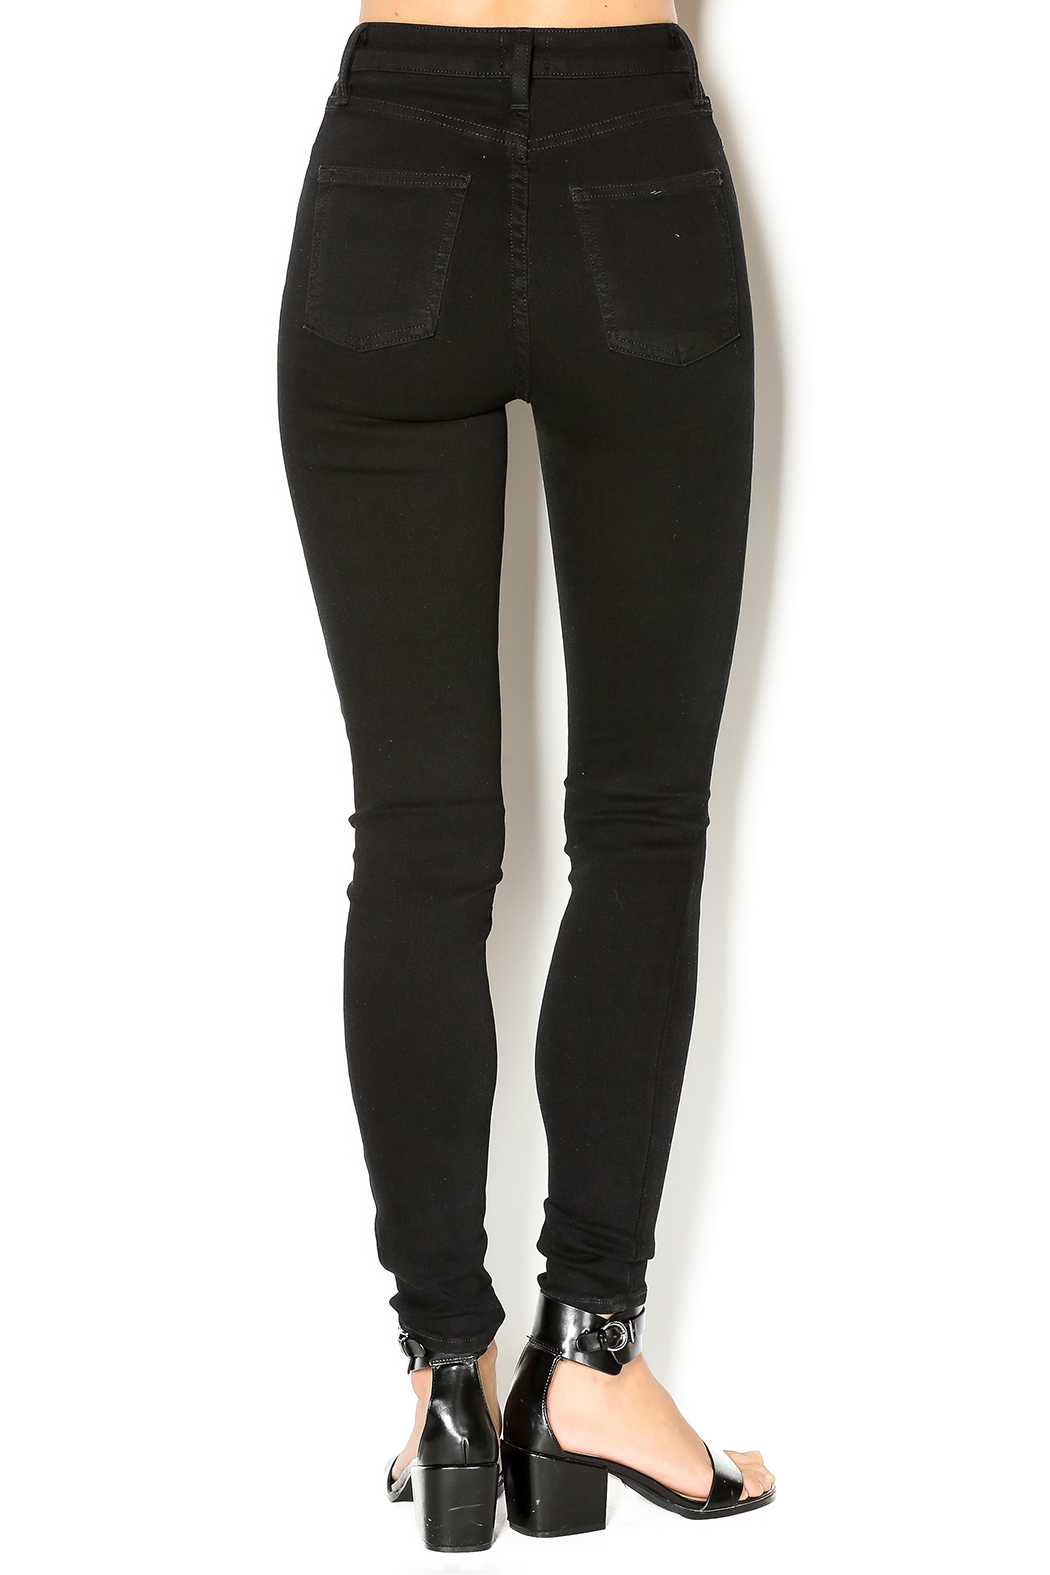 just black Black Skinny Jean - Back Cropped Image